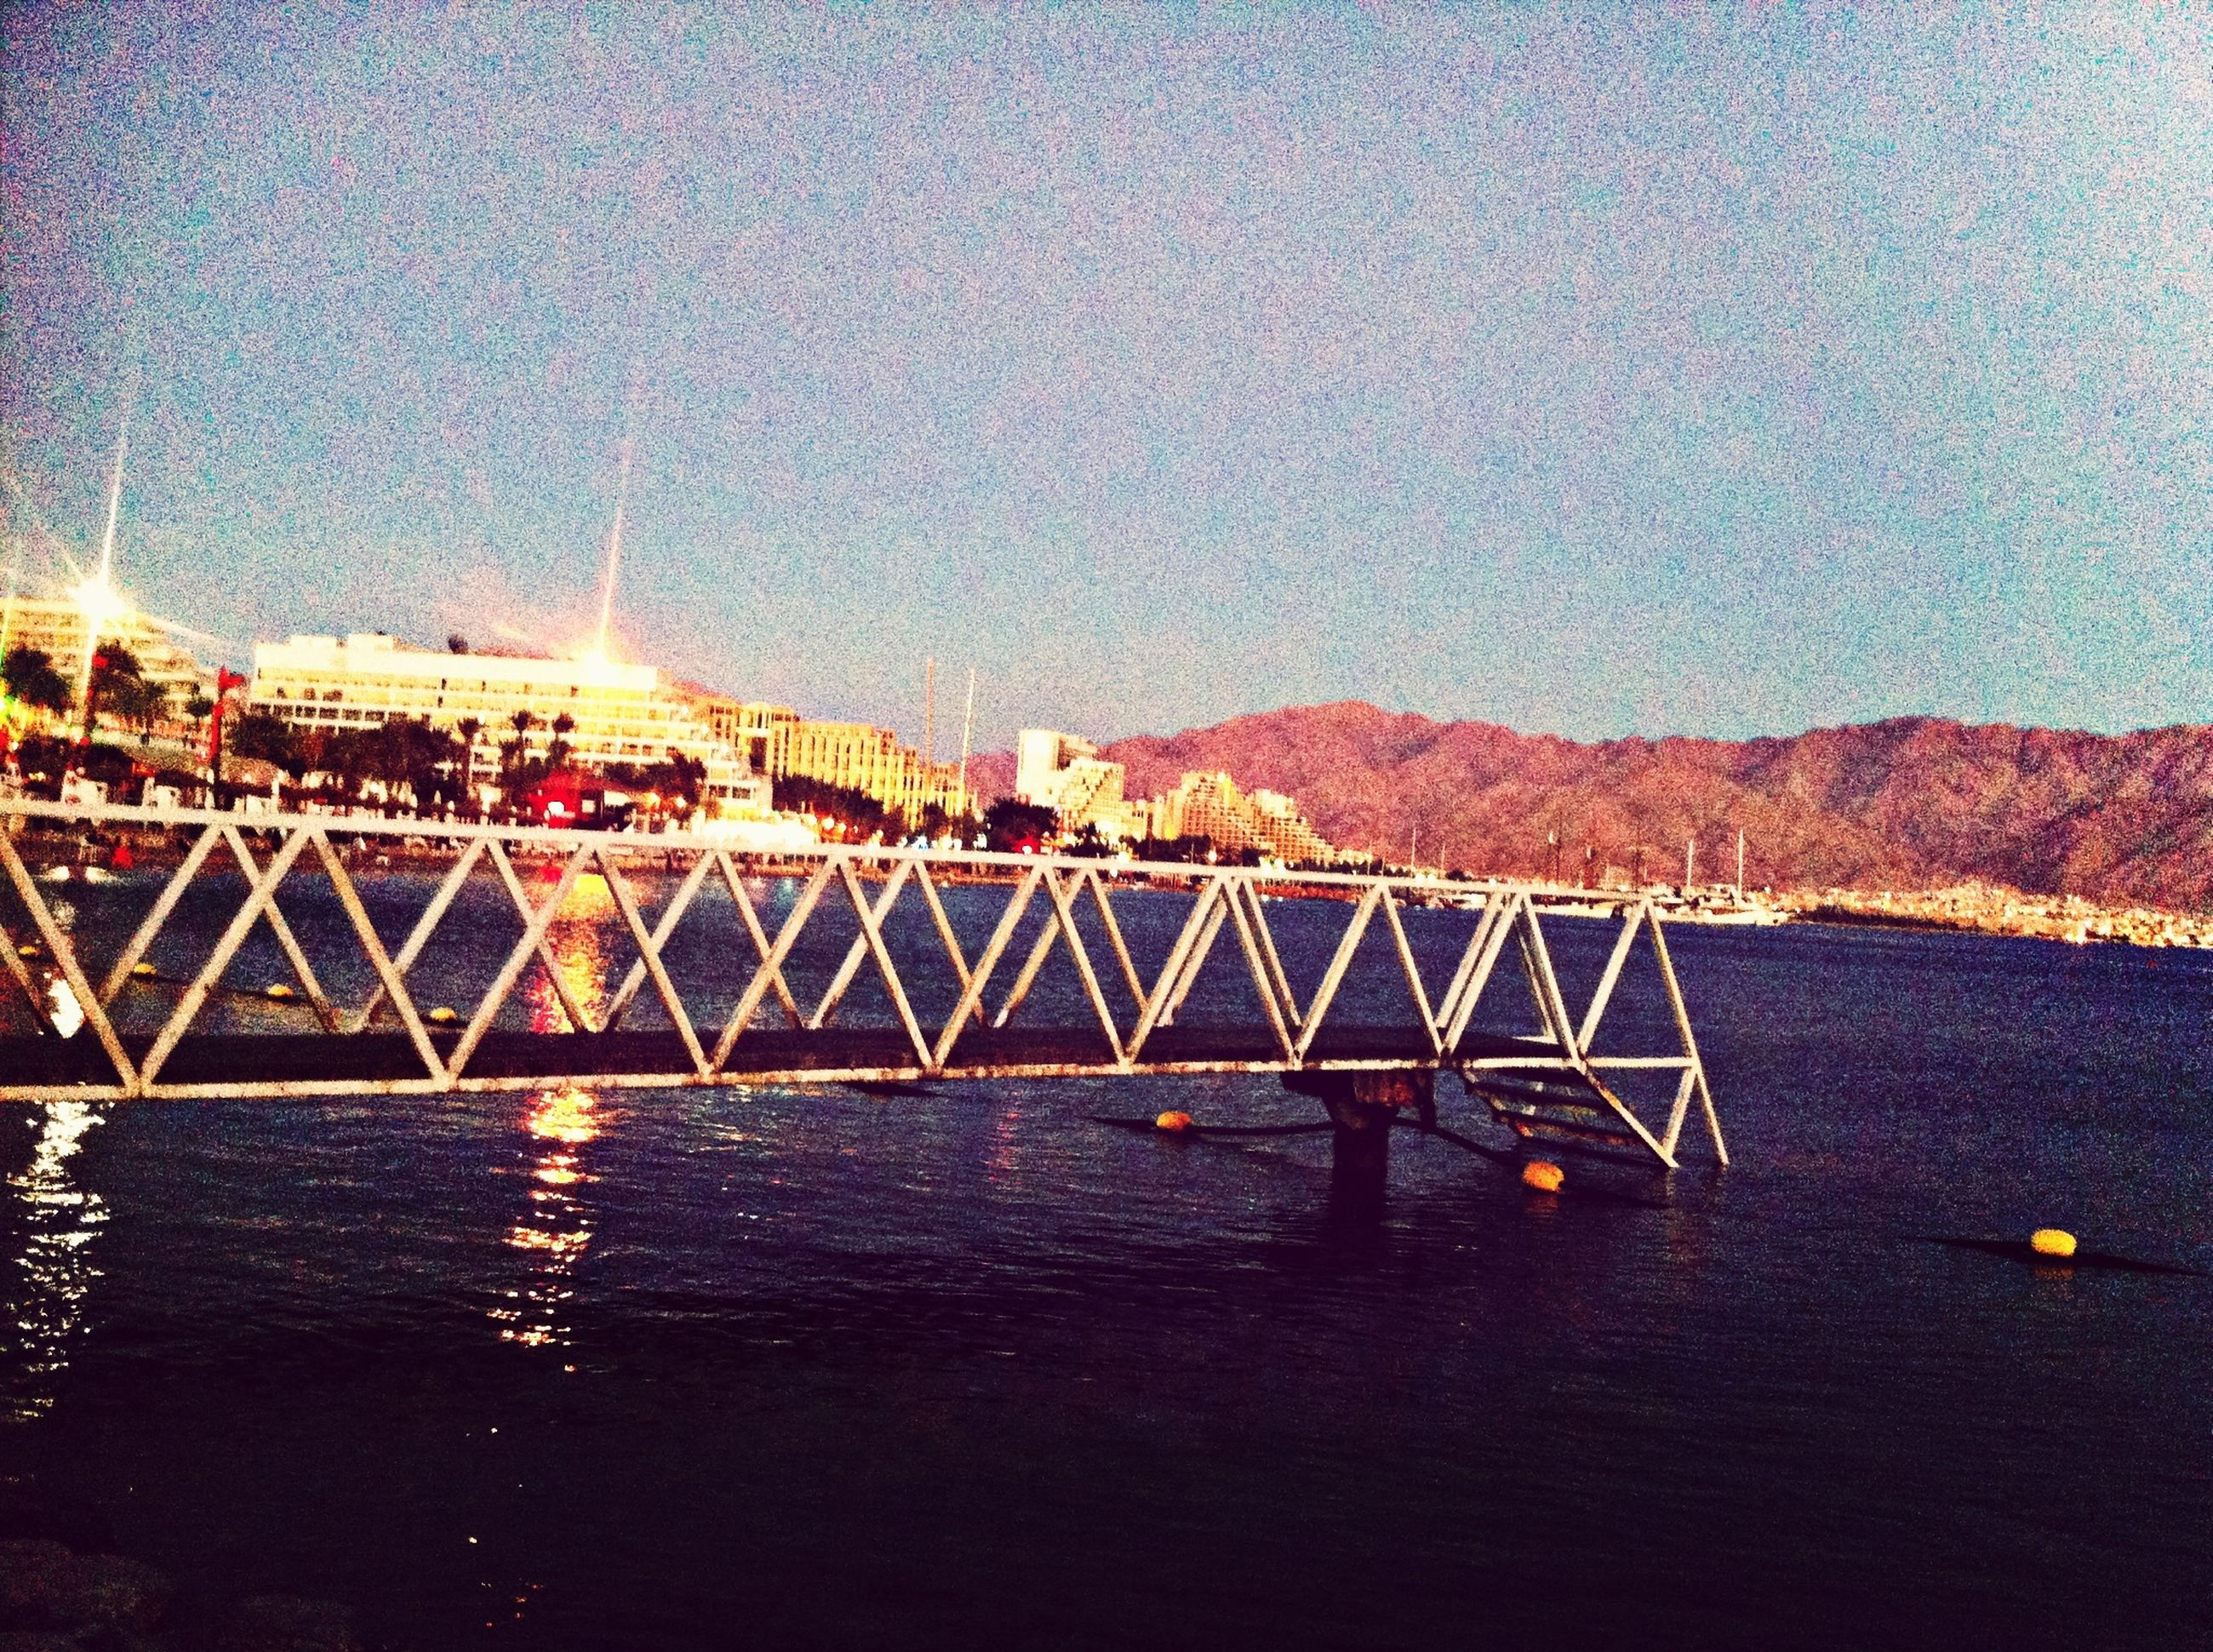 water, built structure, bridge - man made structure, architecture, illuminated, connection, sky, sea, waterfront, river, bridge, night, engineering, copy space, clear sky, sunset, dusk, suspension bridge, transportation, outdoors